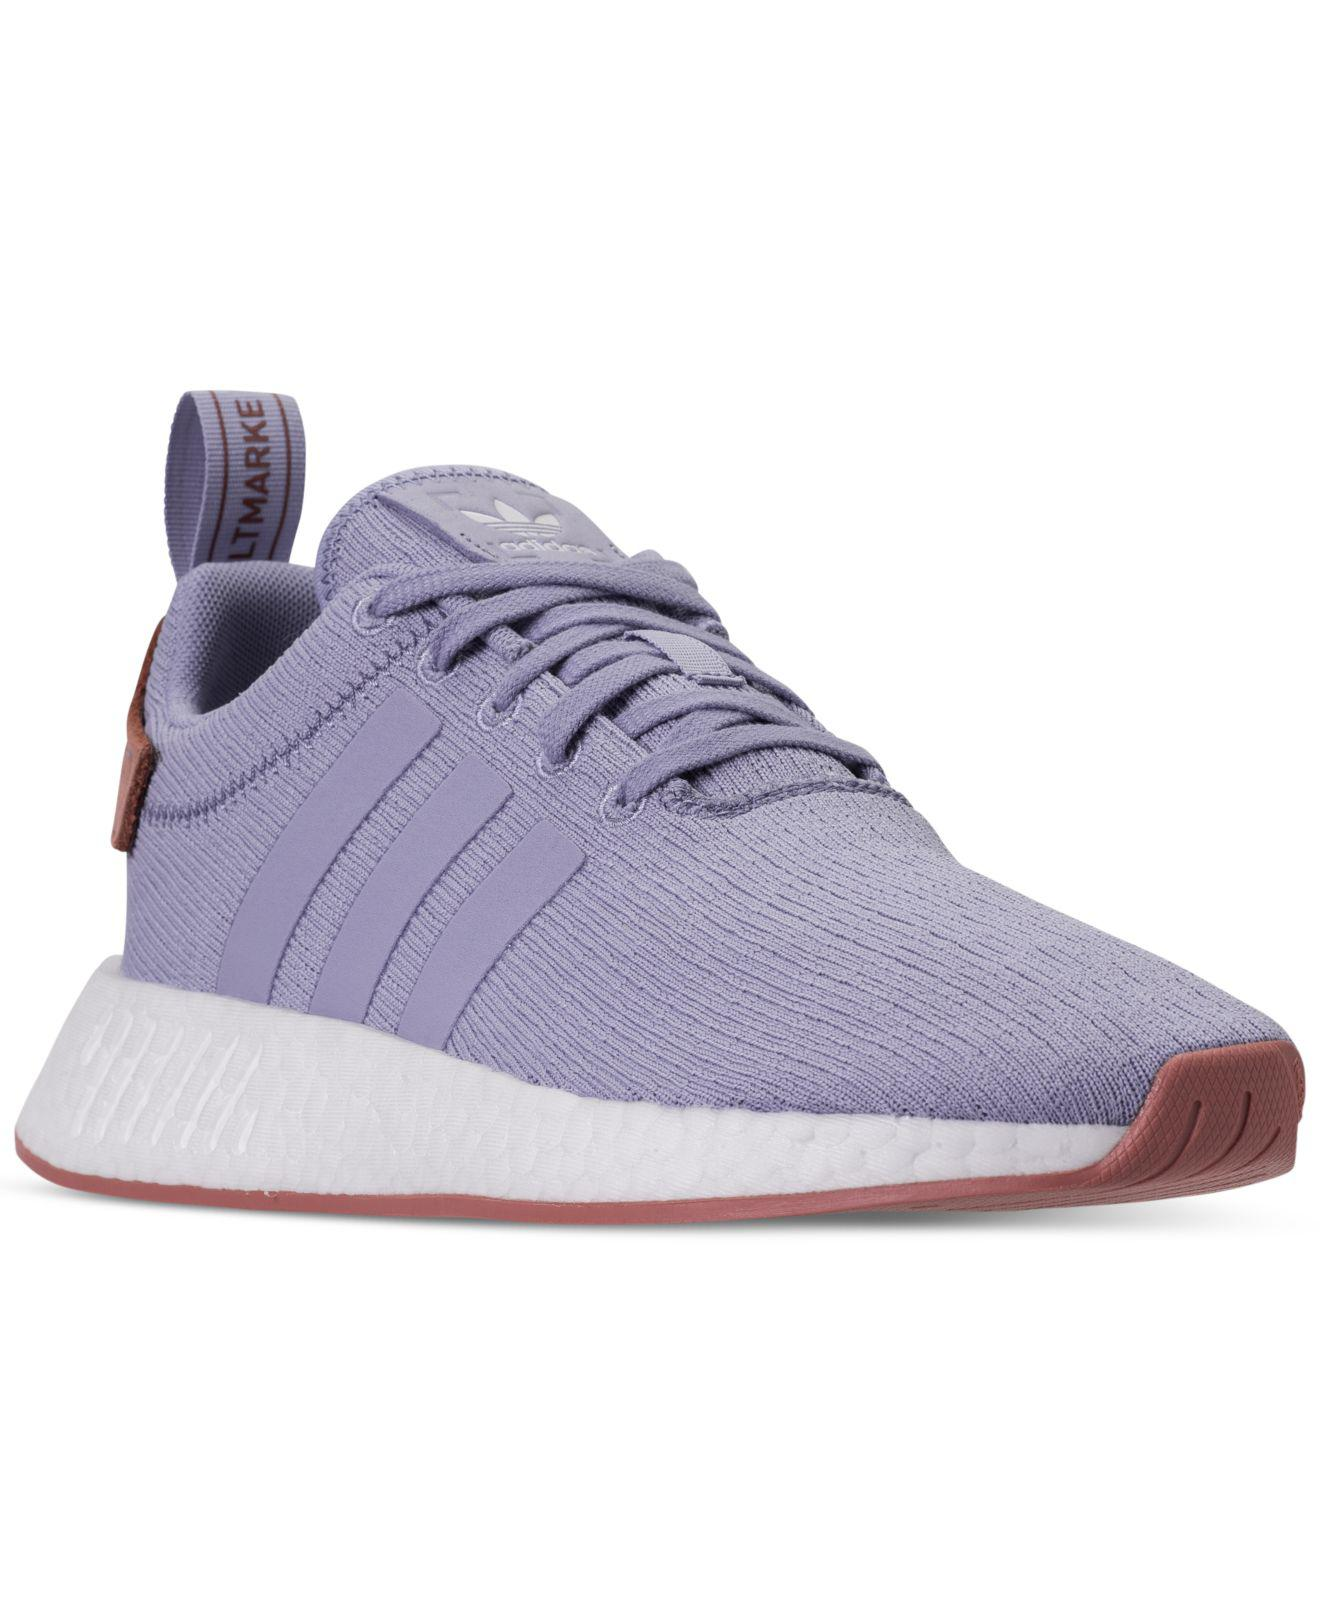 da868458ba6ae Lyst - adidas Women s Nmd R2 Casual Sneakers From Finish Line in Blue